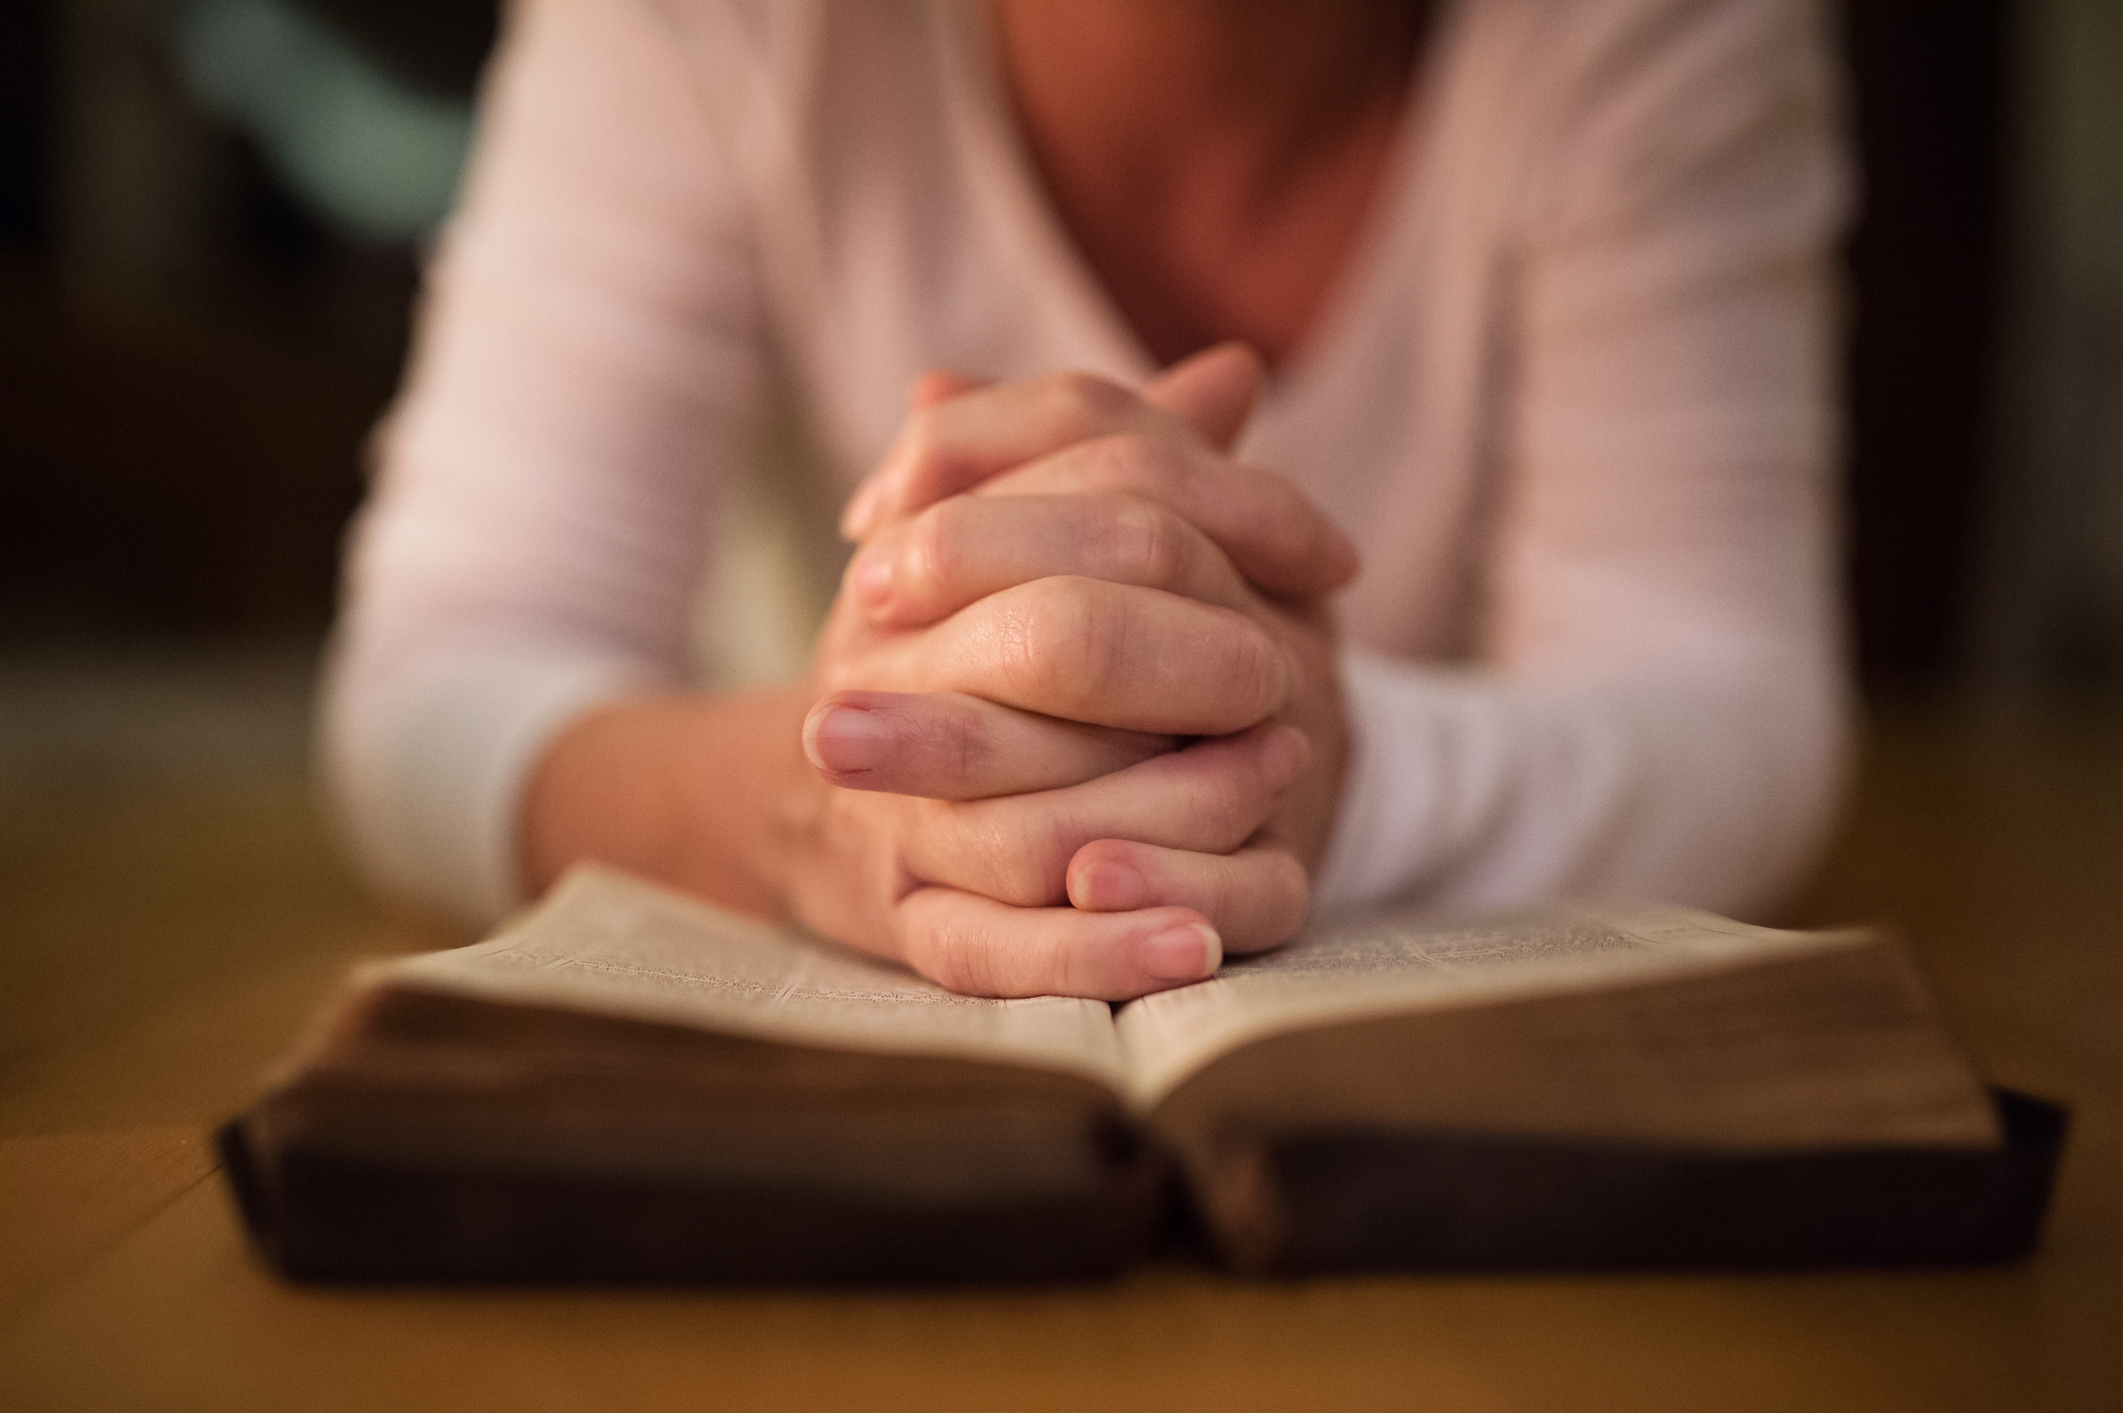 Prayer is Hard, but Here's How I Make it Happen Anyway